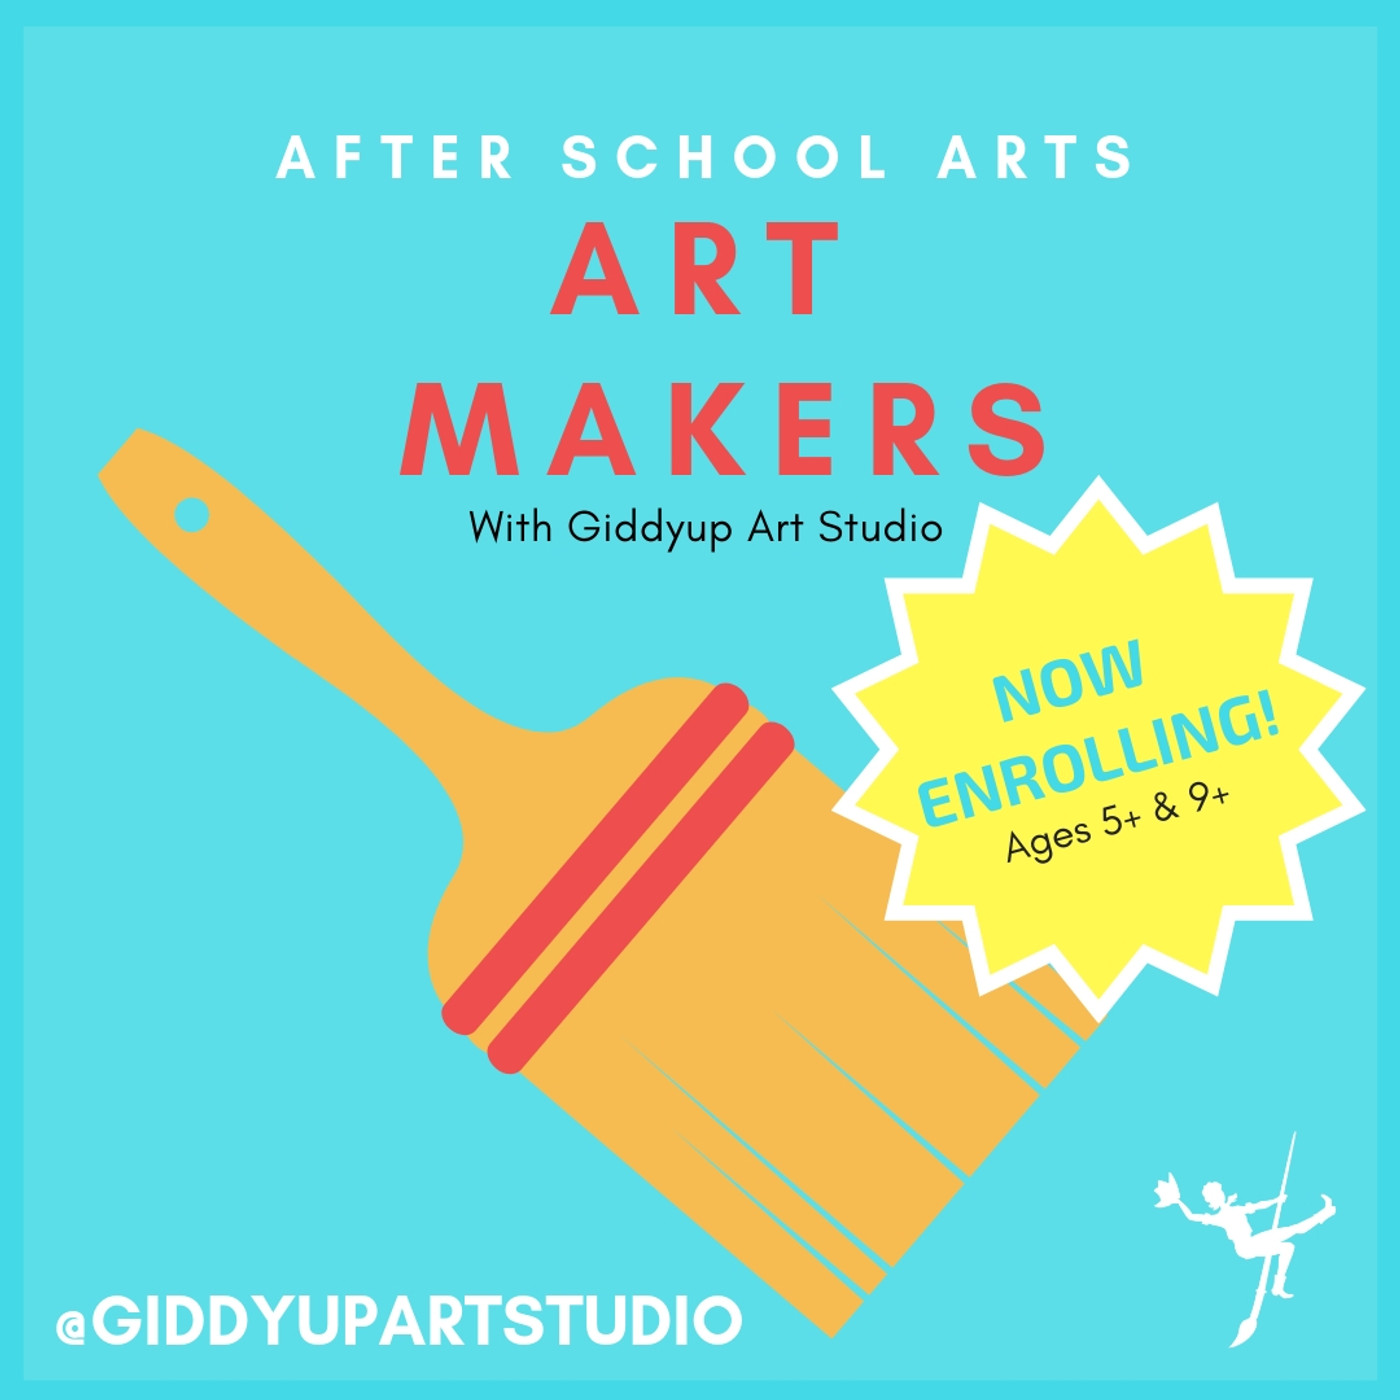 ART MAKERS (ages 5 +)